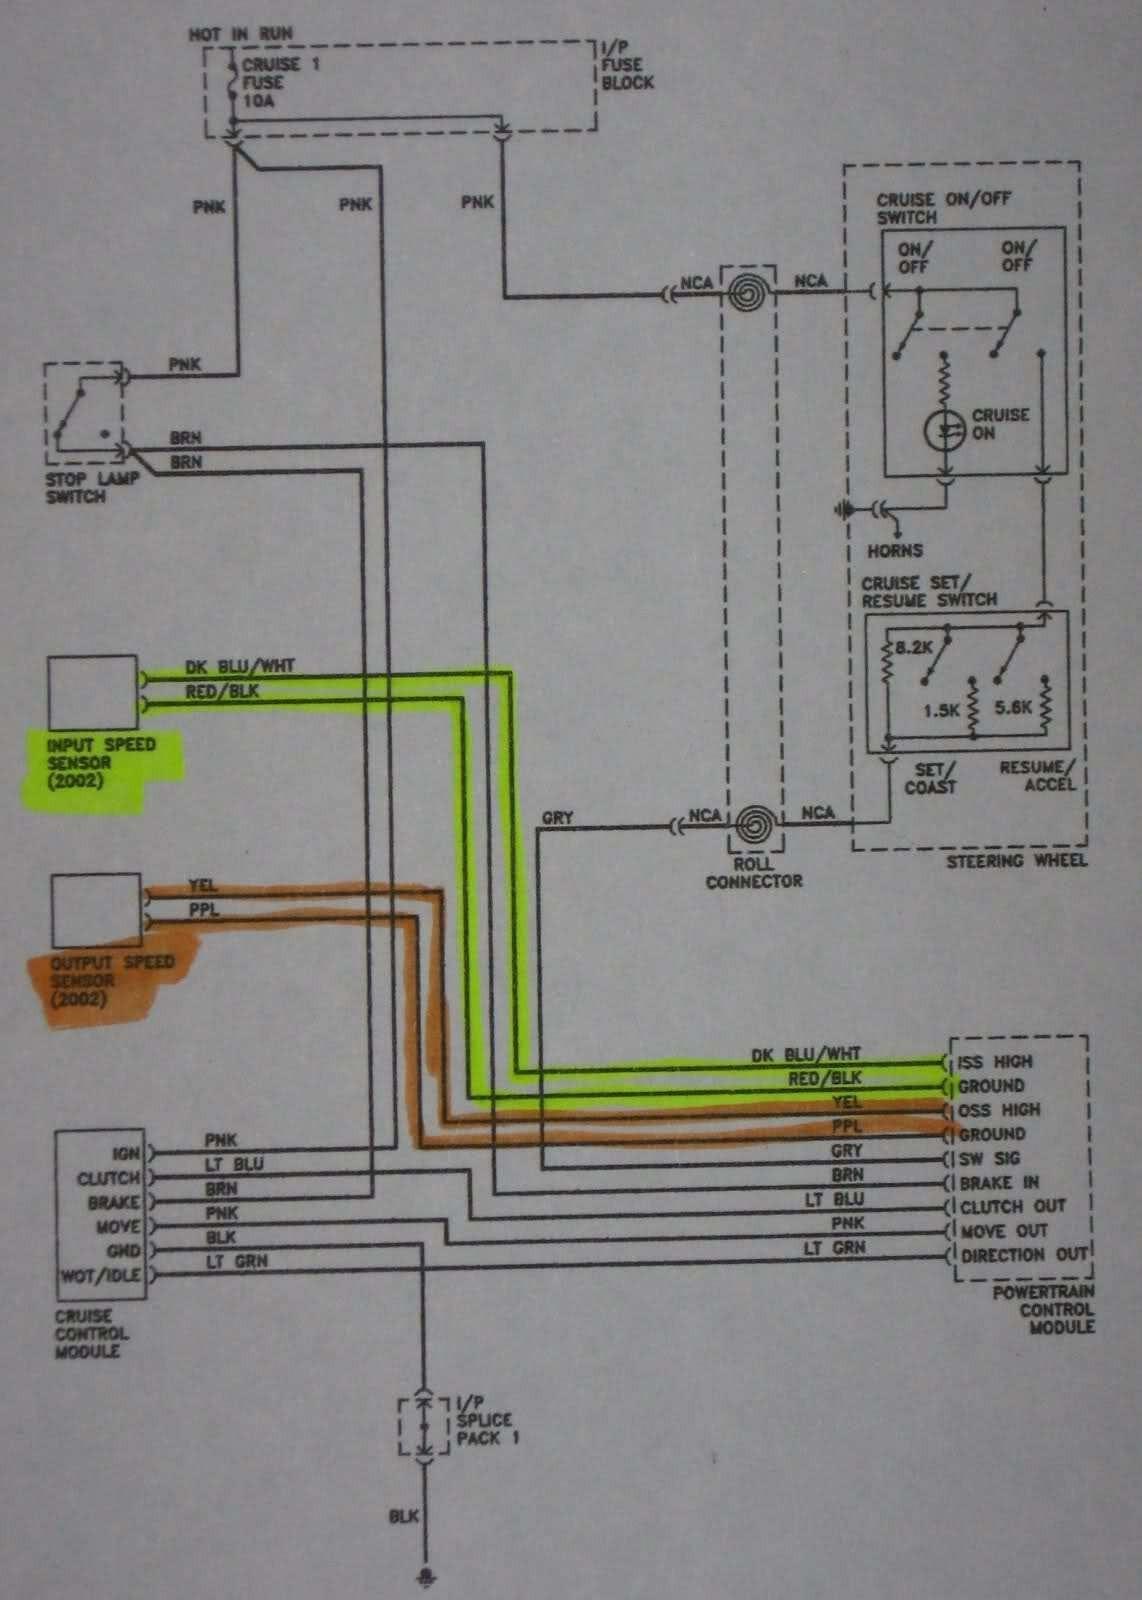 2006 Saturn Vue Stereo Wiring Diagram from static-cdn.imageservice.cloud